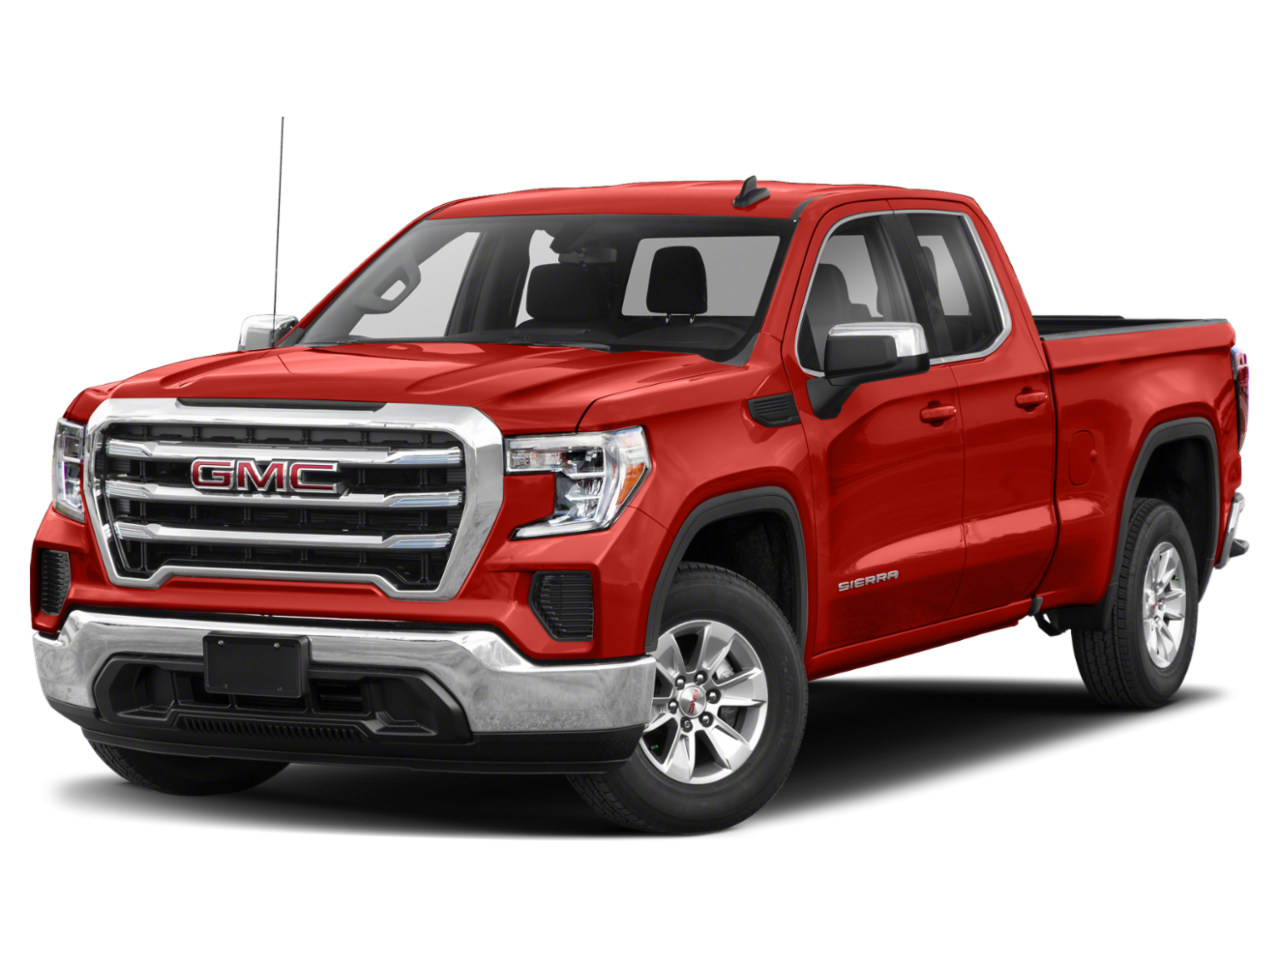 2020 GMC Sierra 1500 Elevation Extended Cab